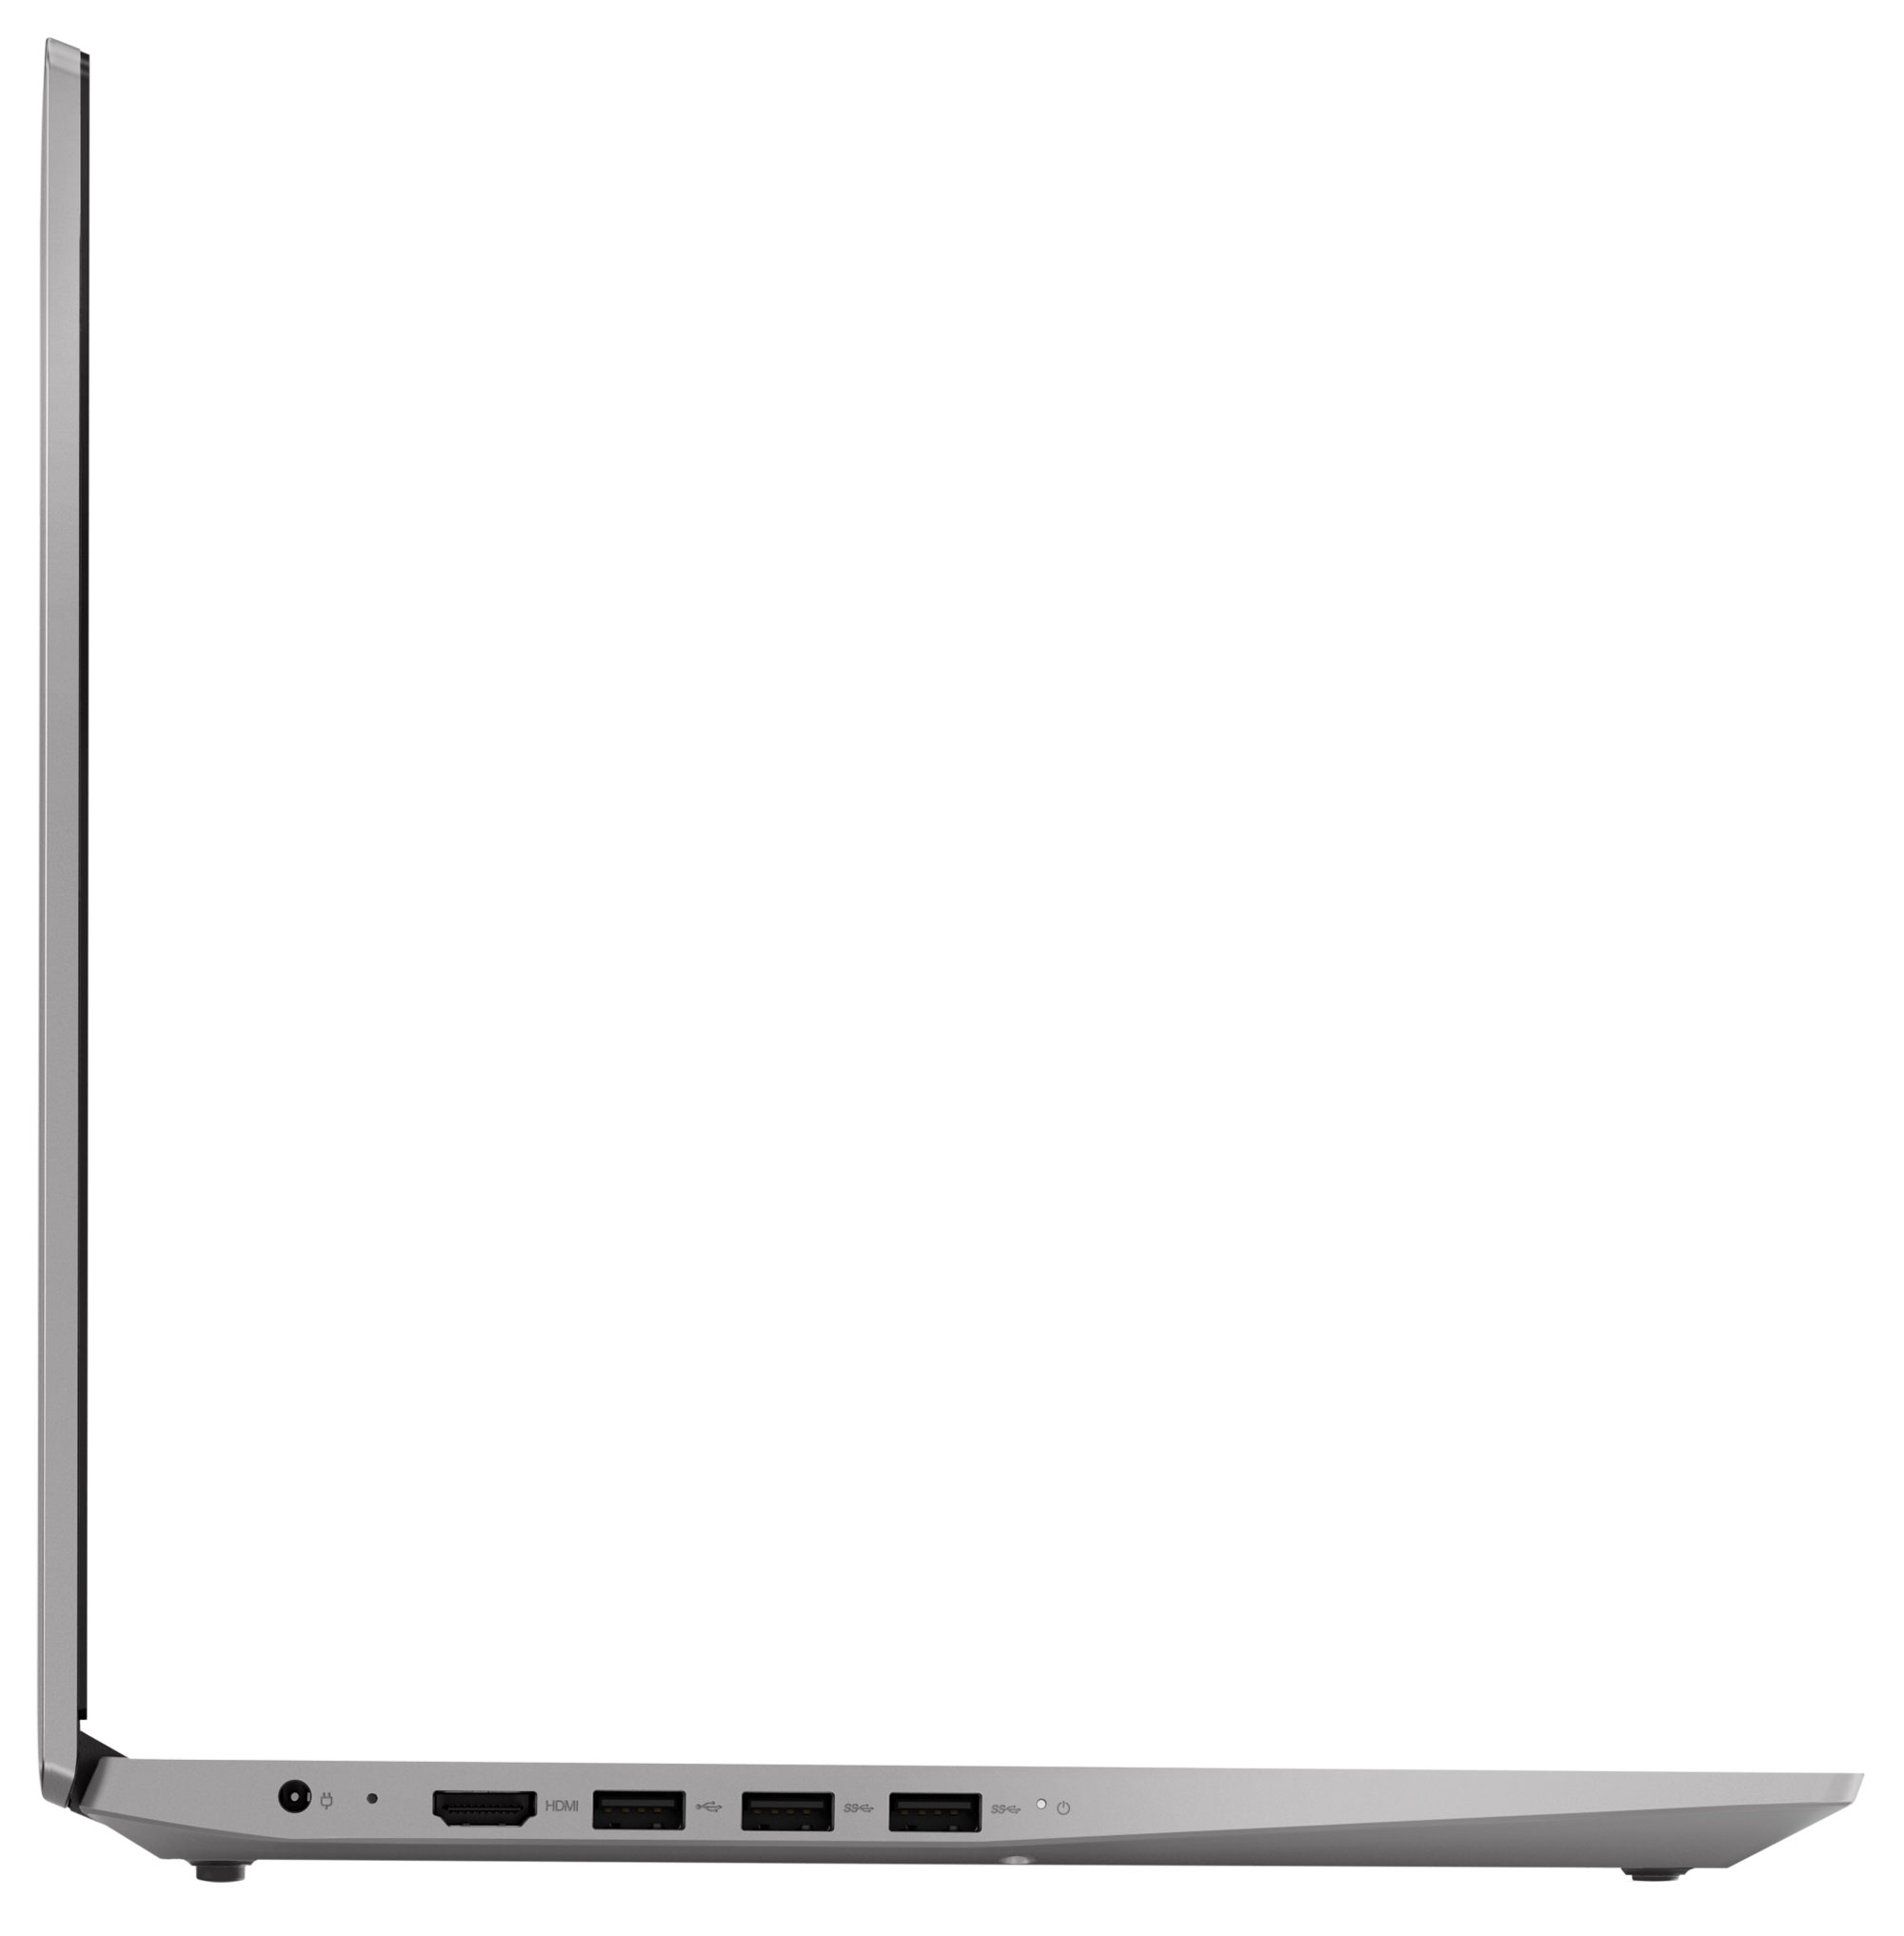 Фото  Ноутбук Lenovo ideapad S145-15 Grey  (81UT0073RE)